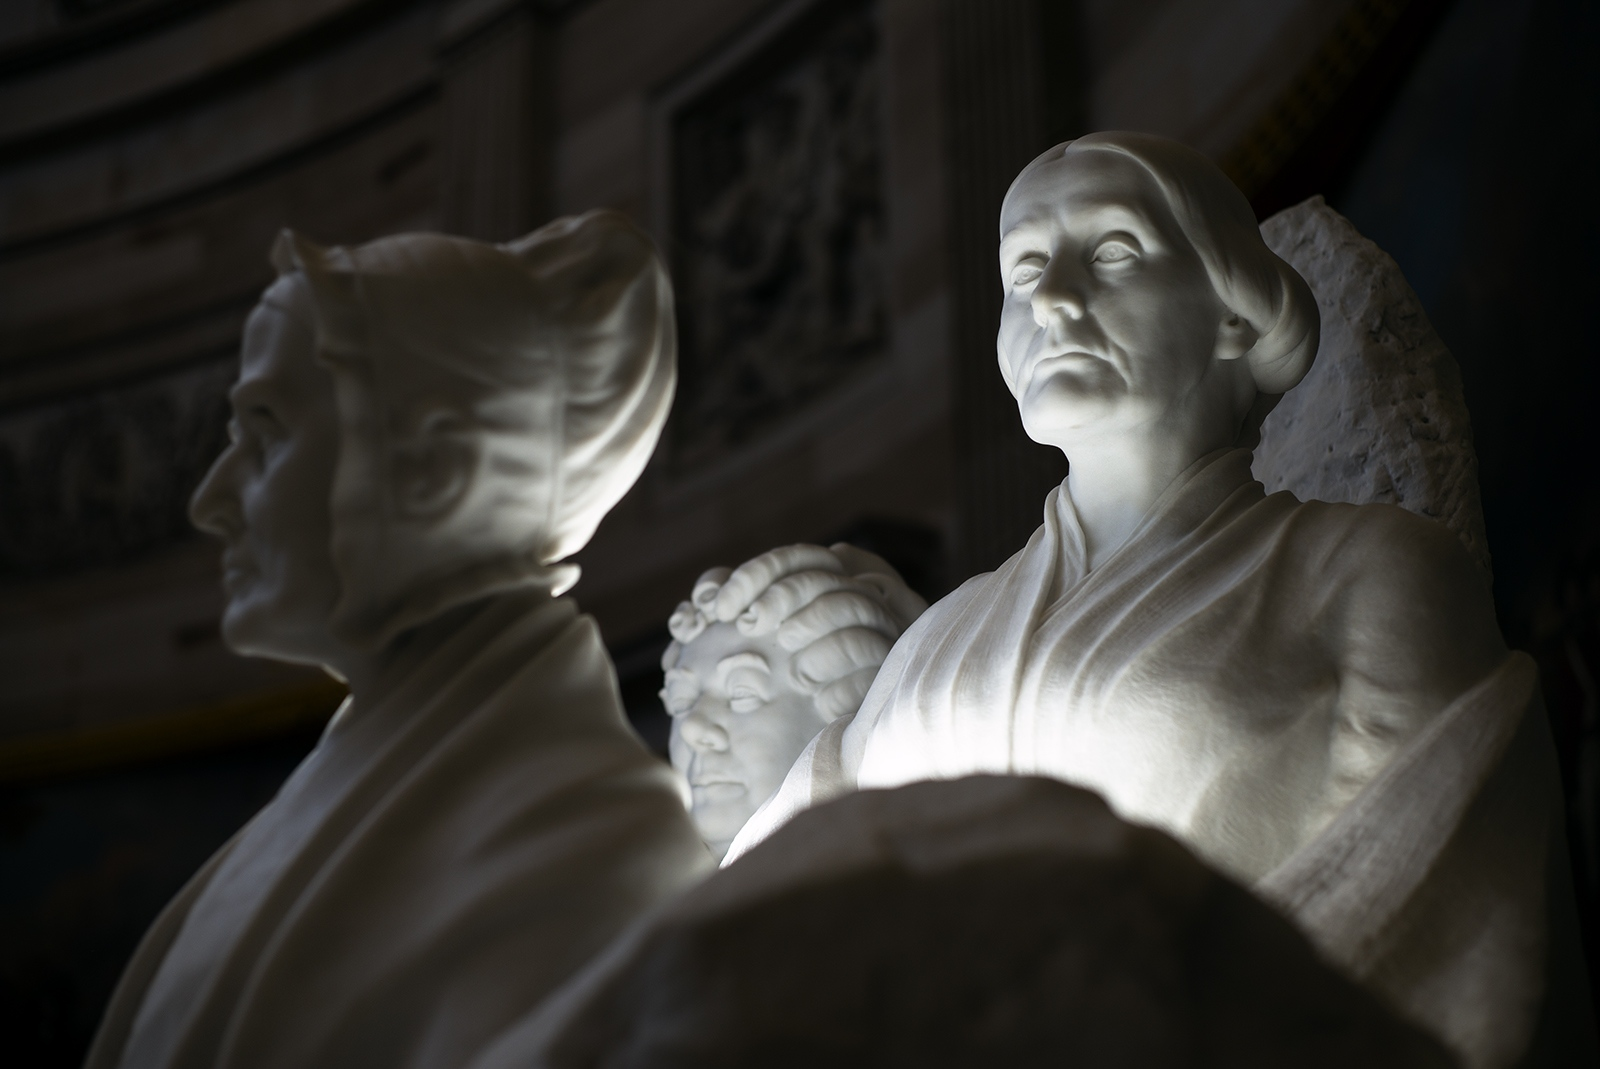 The Suffragettes, a monument to Elizabeth Cady Stanton, Susan B. Anthony and Lucretia Mott, in the Capitol rotunda.